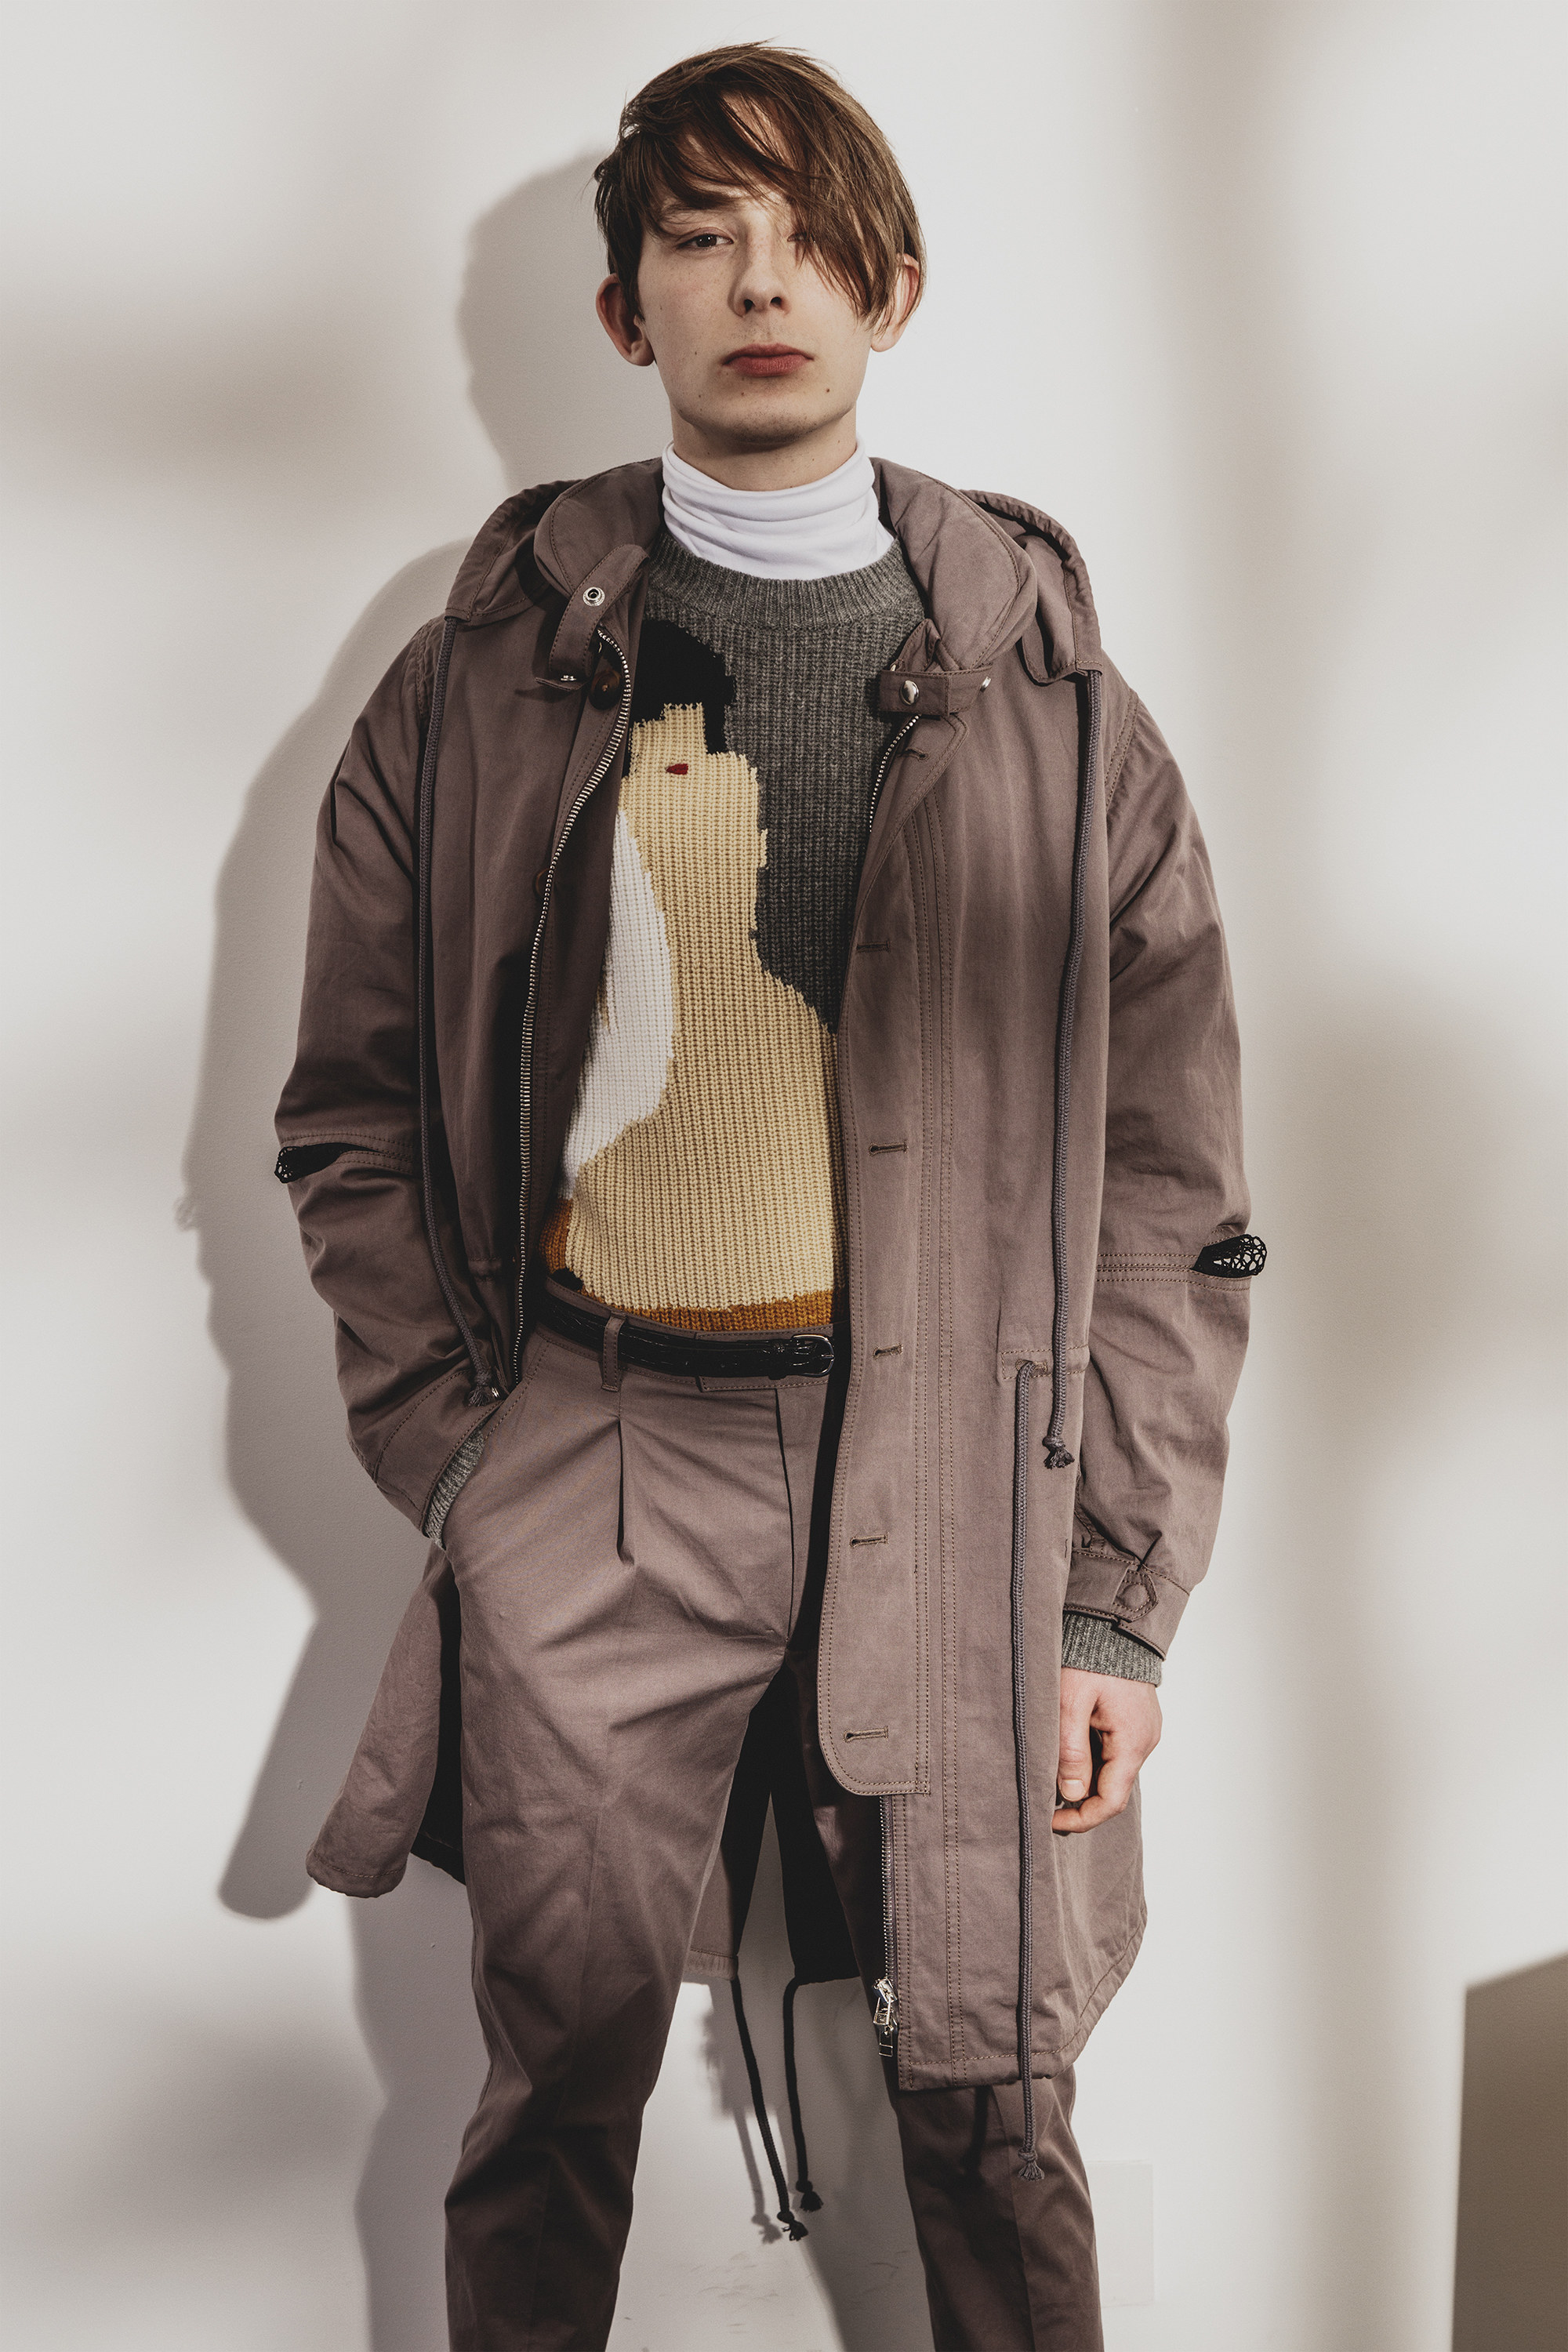 3-1-phillip-lim-menswear-2016-lookbook-25.jpg